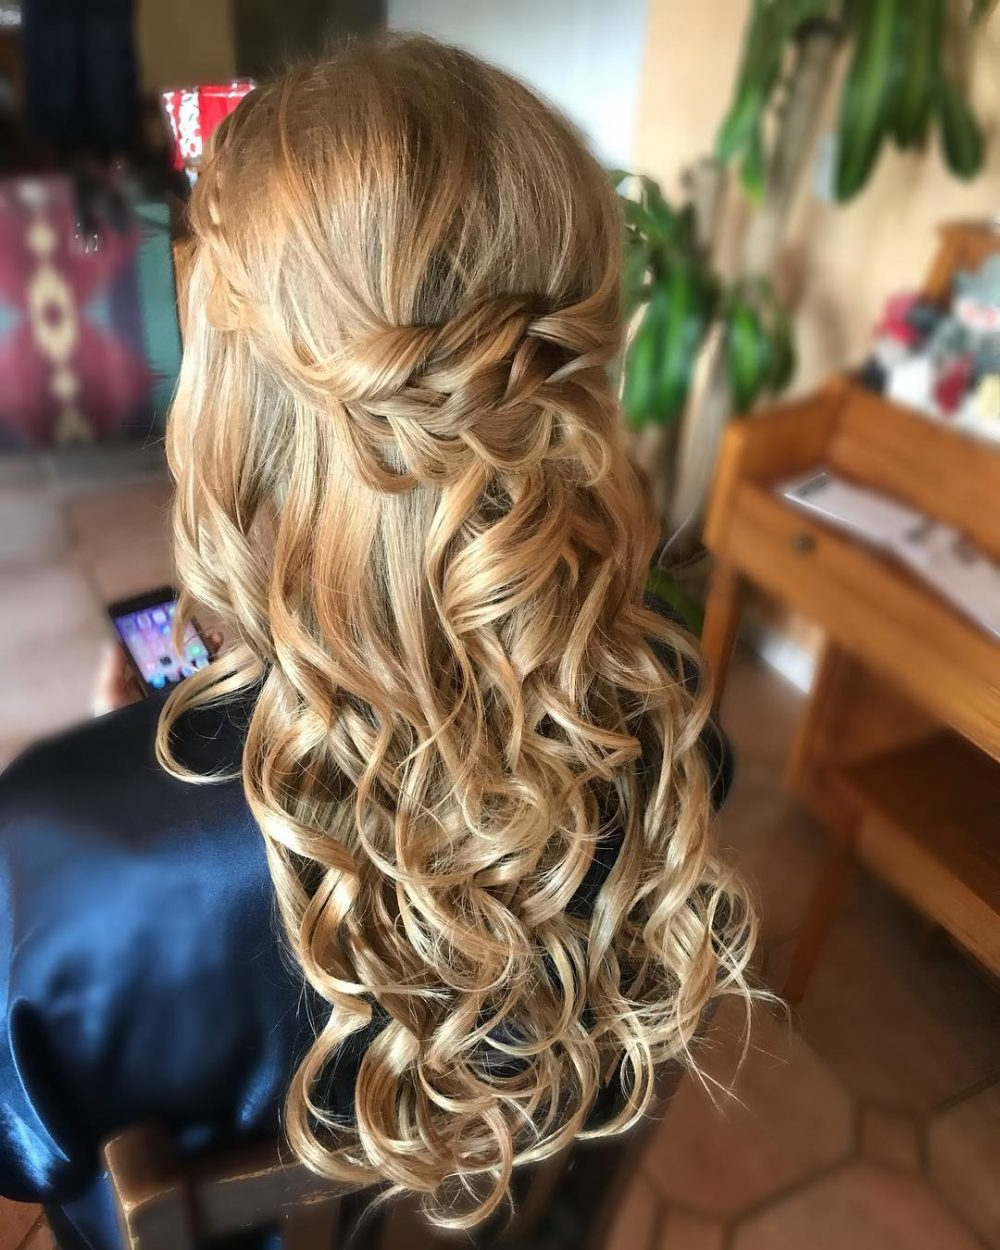 24 Gorgeous Wedding Hairstyles For Long Hair In 2019 Throughout 2017 Tied Back Ombre Curls Bridal Hairstyles (View 4 of 20)